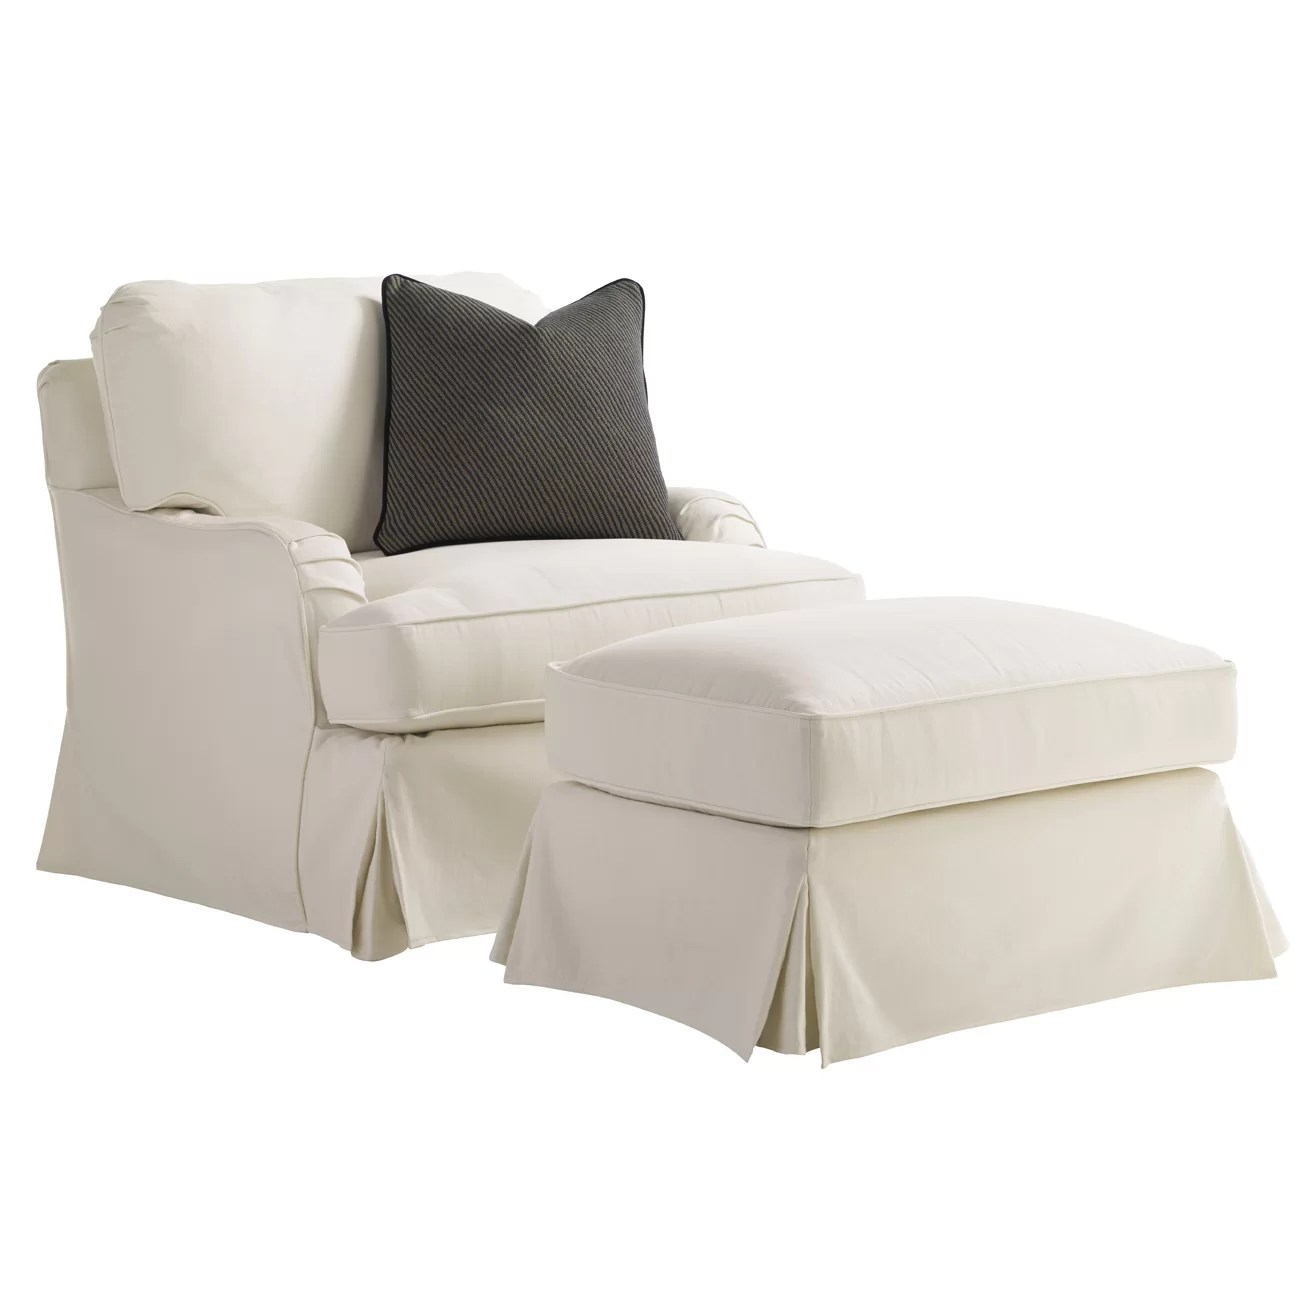 Slipcover For Oversized Chair And Ottoman Coventry Hills Stowe Slipcover Swivel Arm Chair And